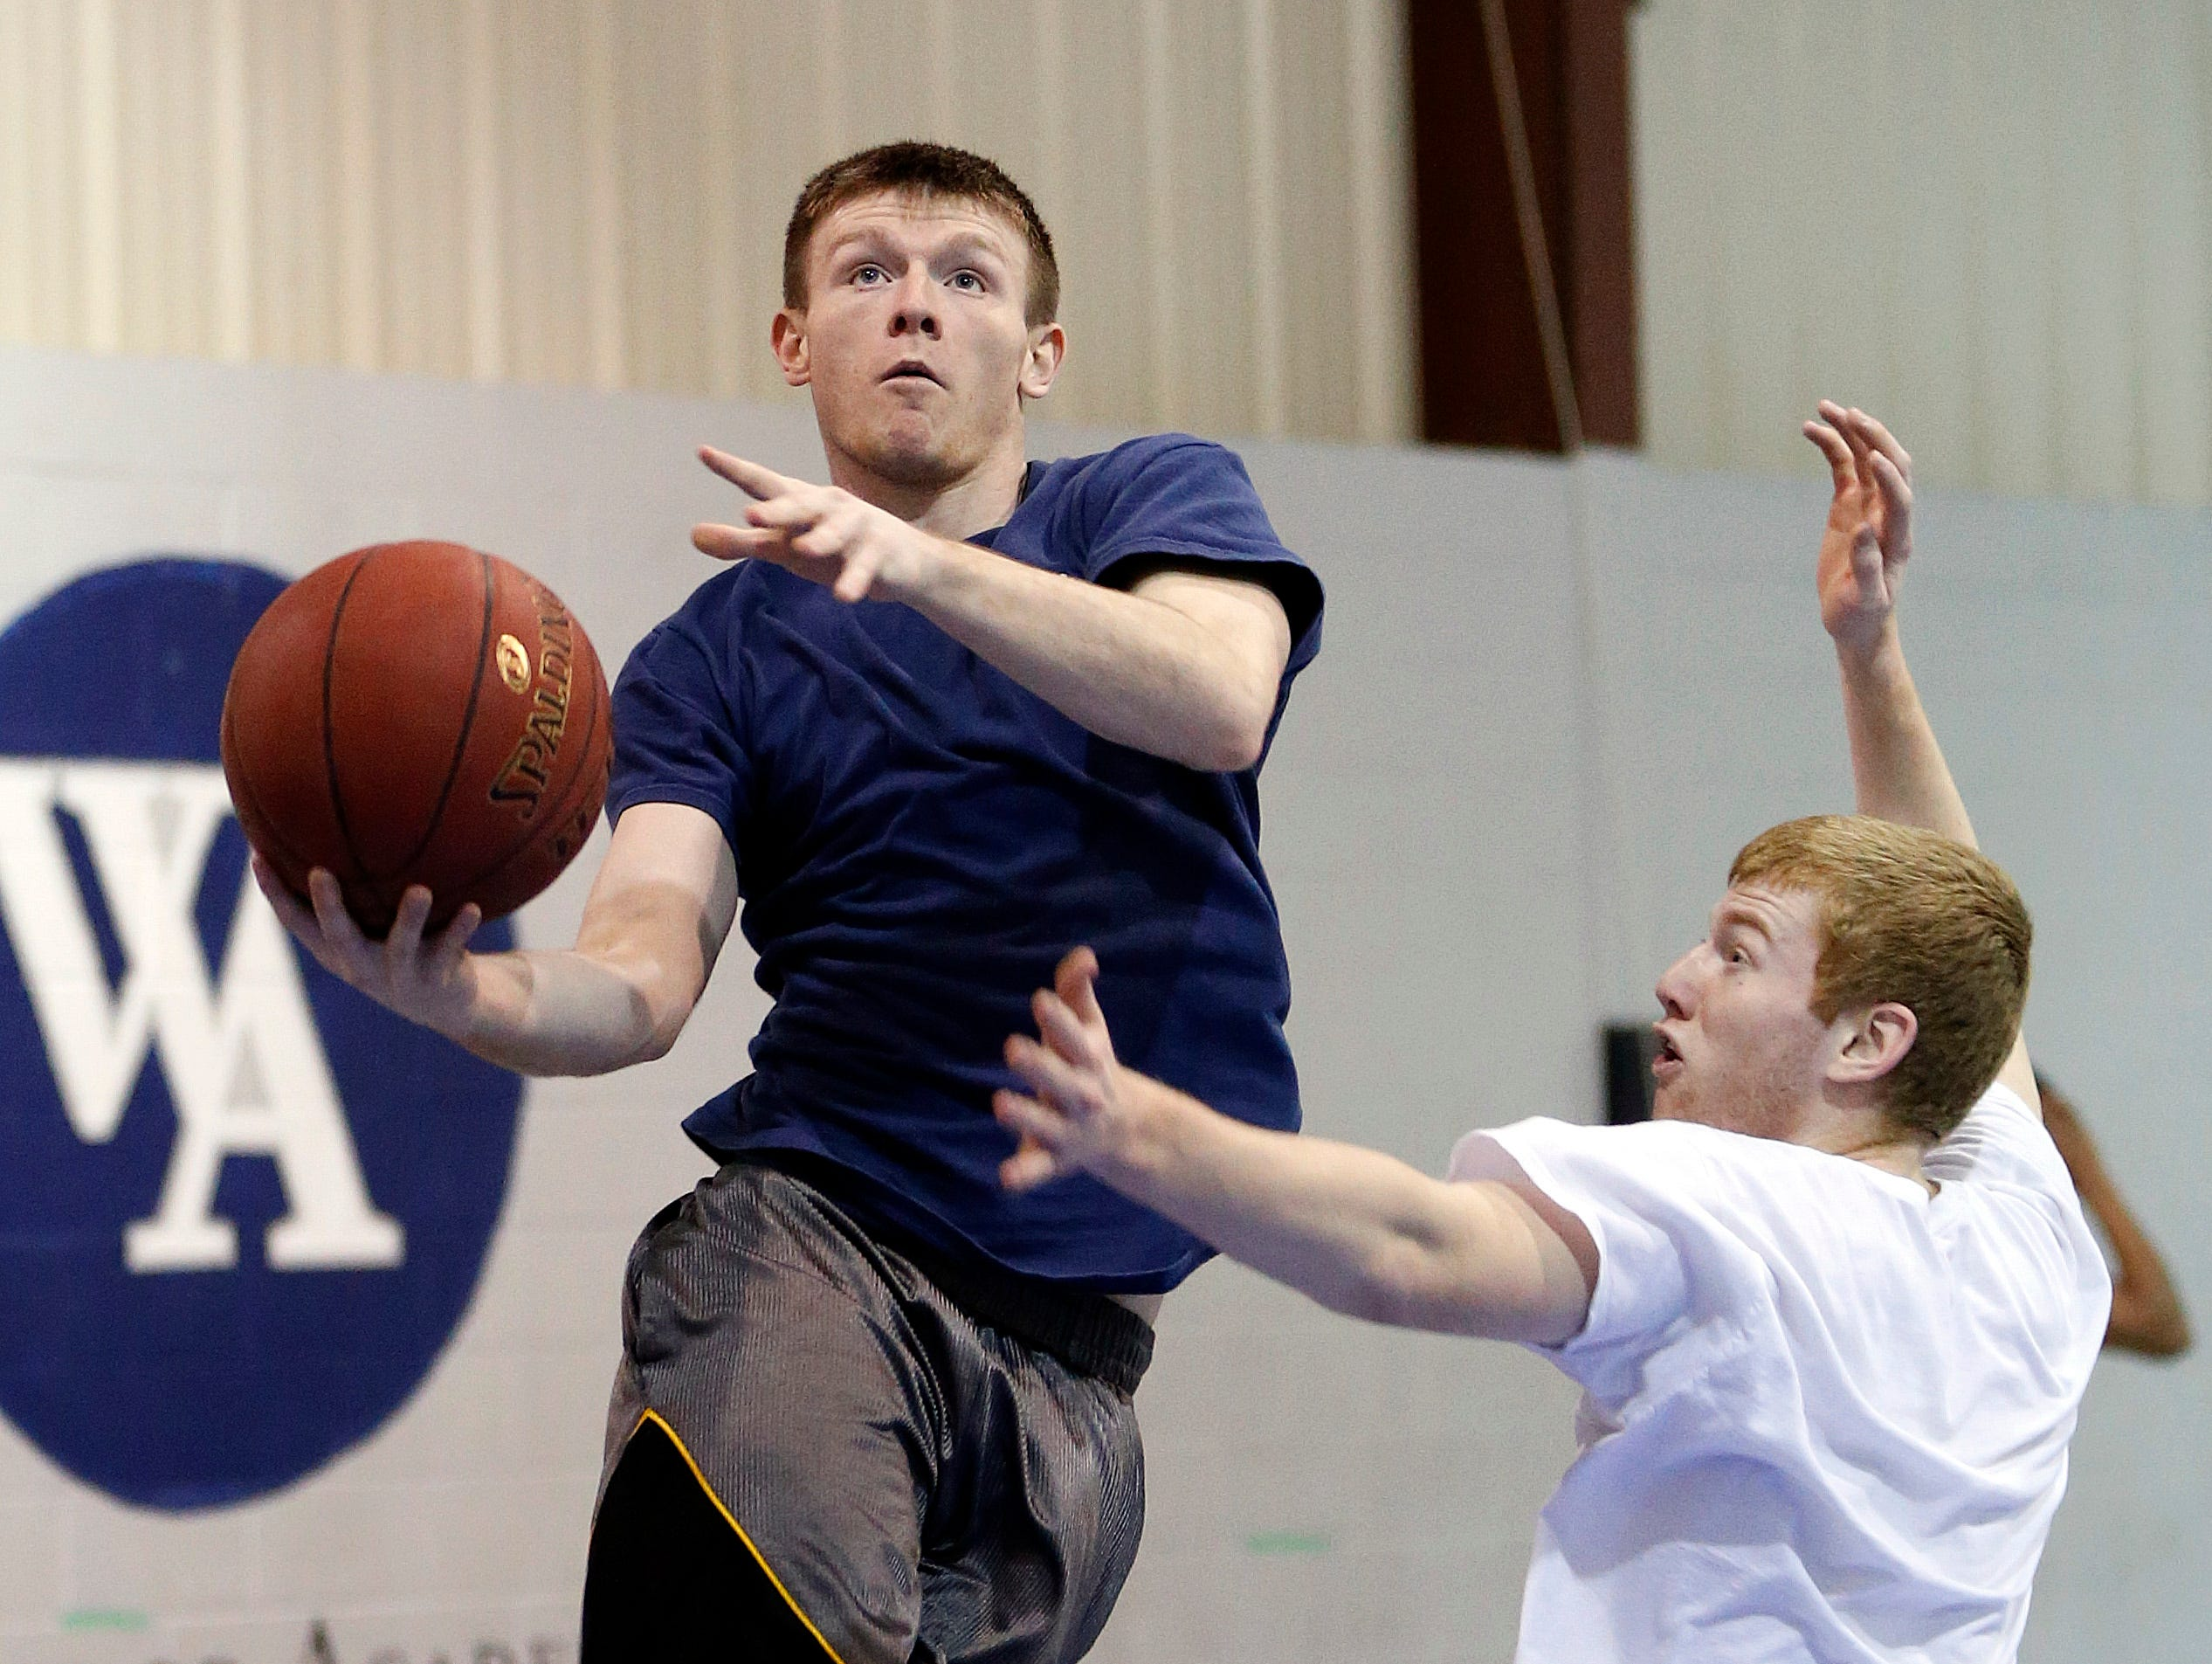 Woodward Academy senior guard Preston Brittain puts up a shot during basketball practice last week. The Knights have qualified for the Class 2-A state boys' basketball tournament, and they'll play top-seeded Aplington-Parkersburg in a quarterfinal game at 8:15 p.m. Monday at Wells Fargo Arena.